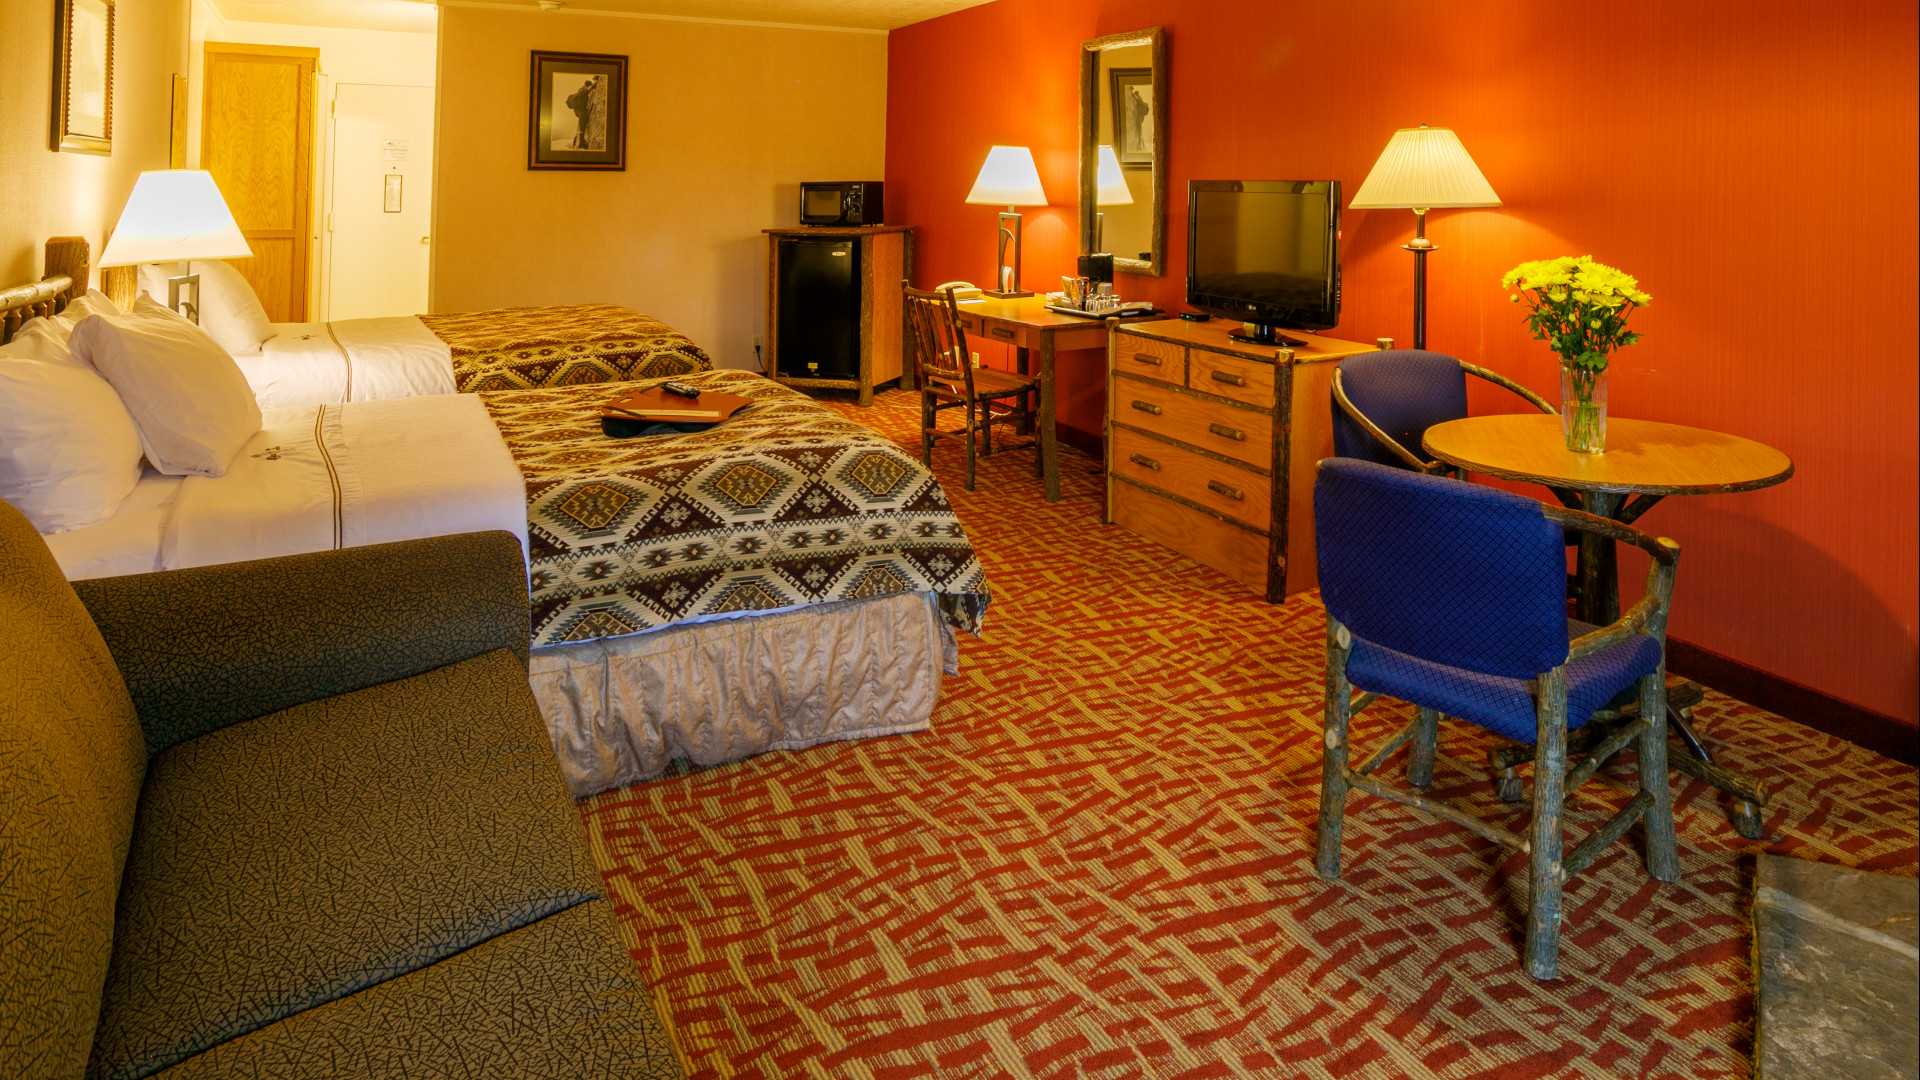 Compare Hotel Rates Compare Hotel Room Rates In Jackson Hole - Town Square Inns